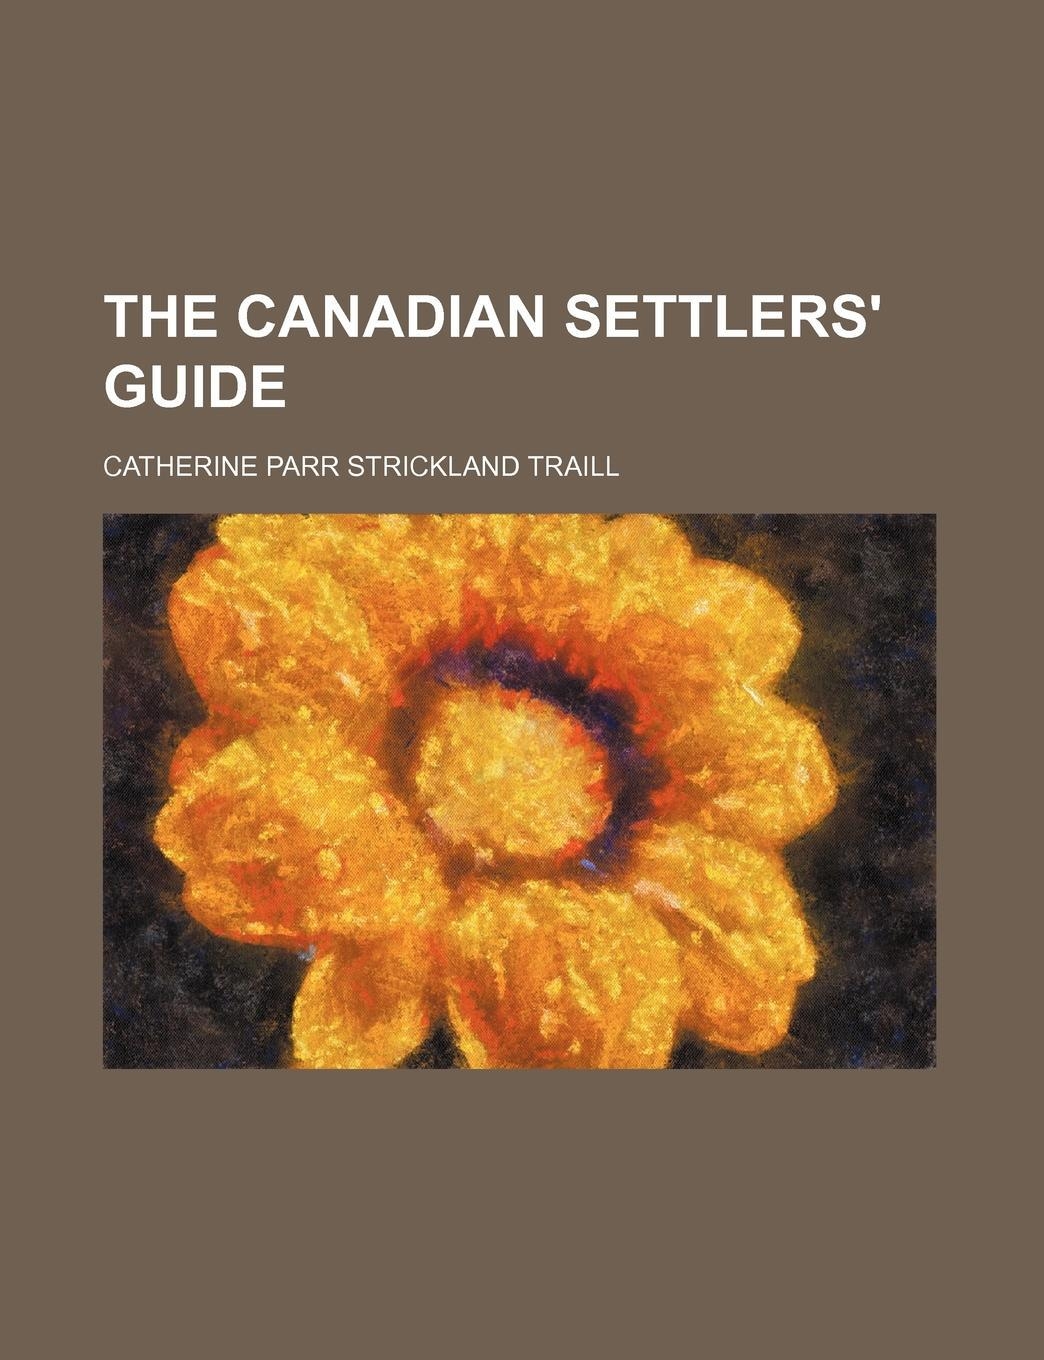 The Canadian Settlers' Guide